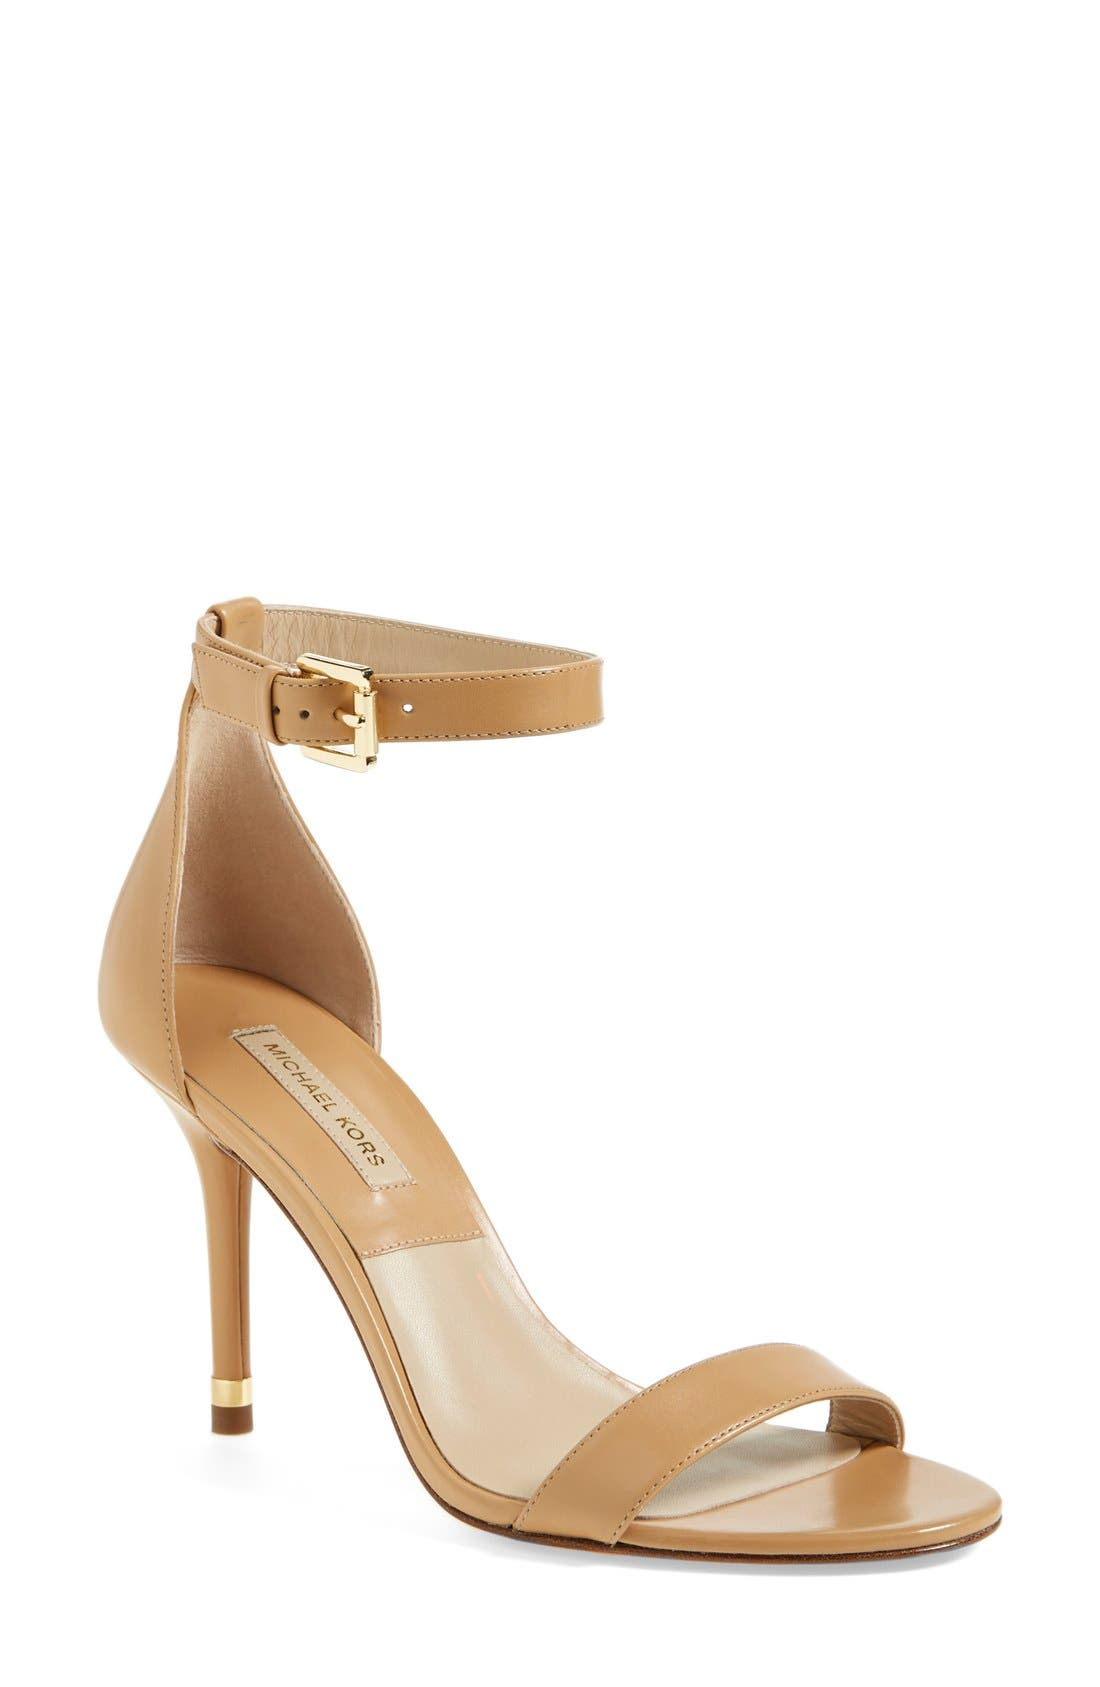 Main Image - KORS Michael Kors 'Suri' Leather Sandal (Women)